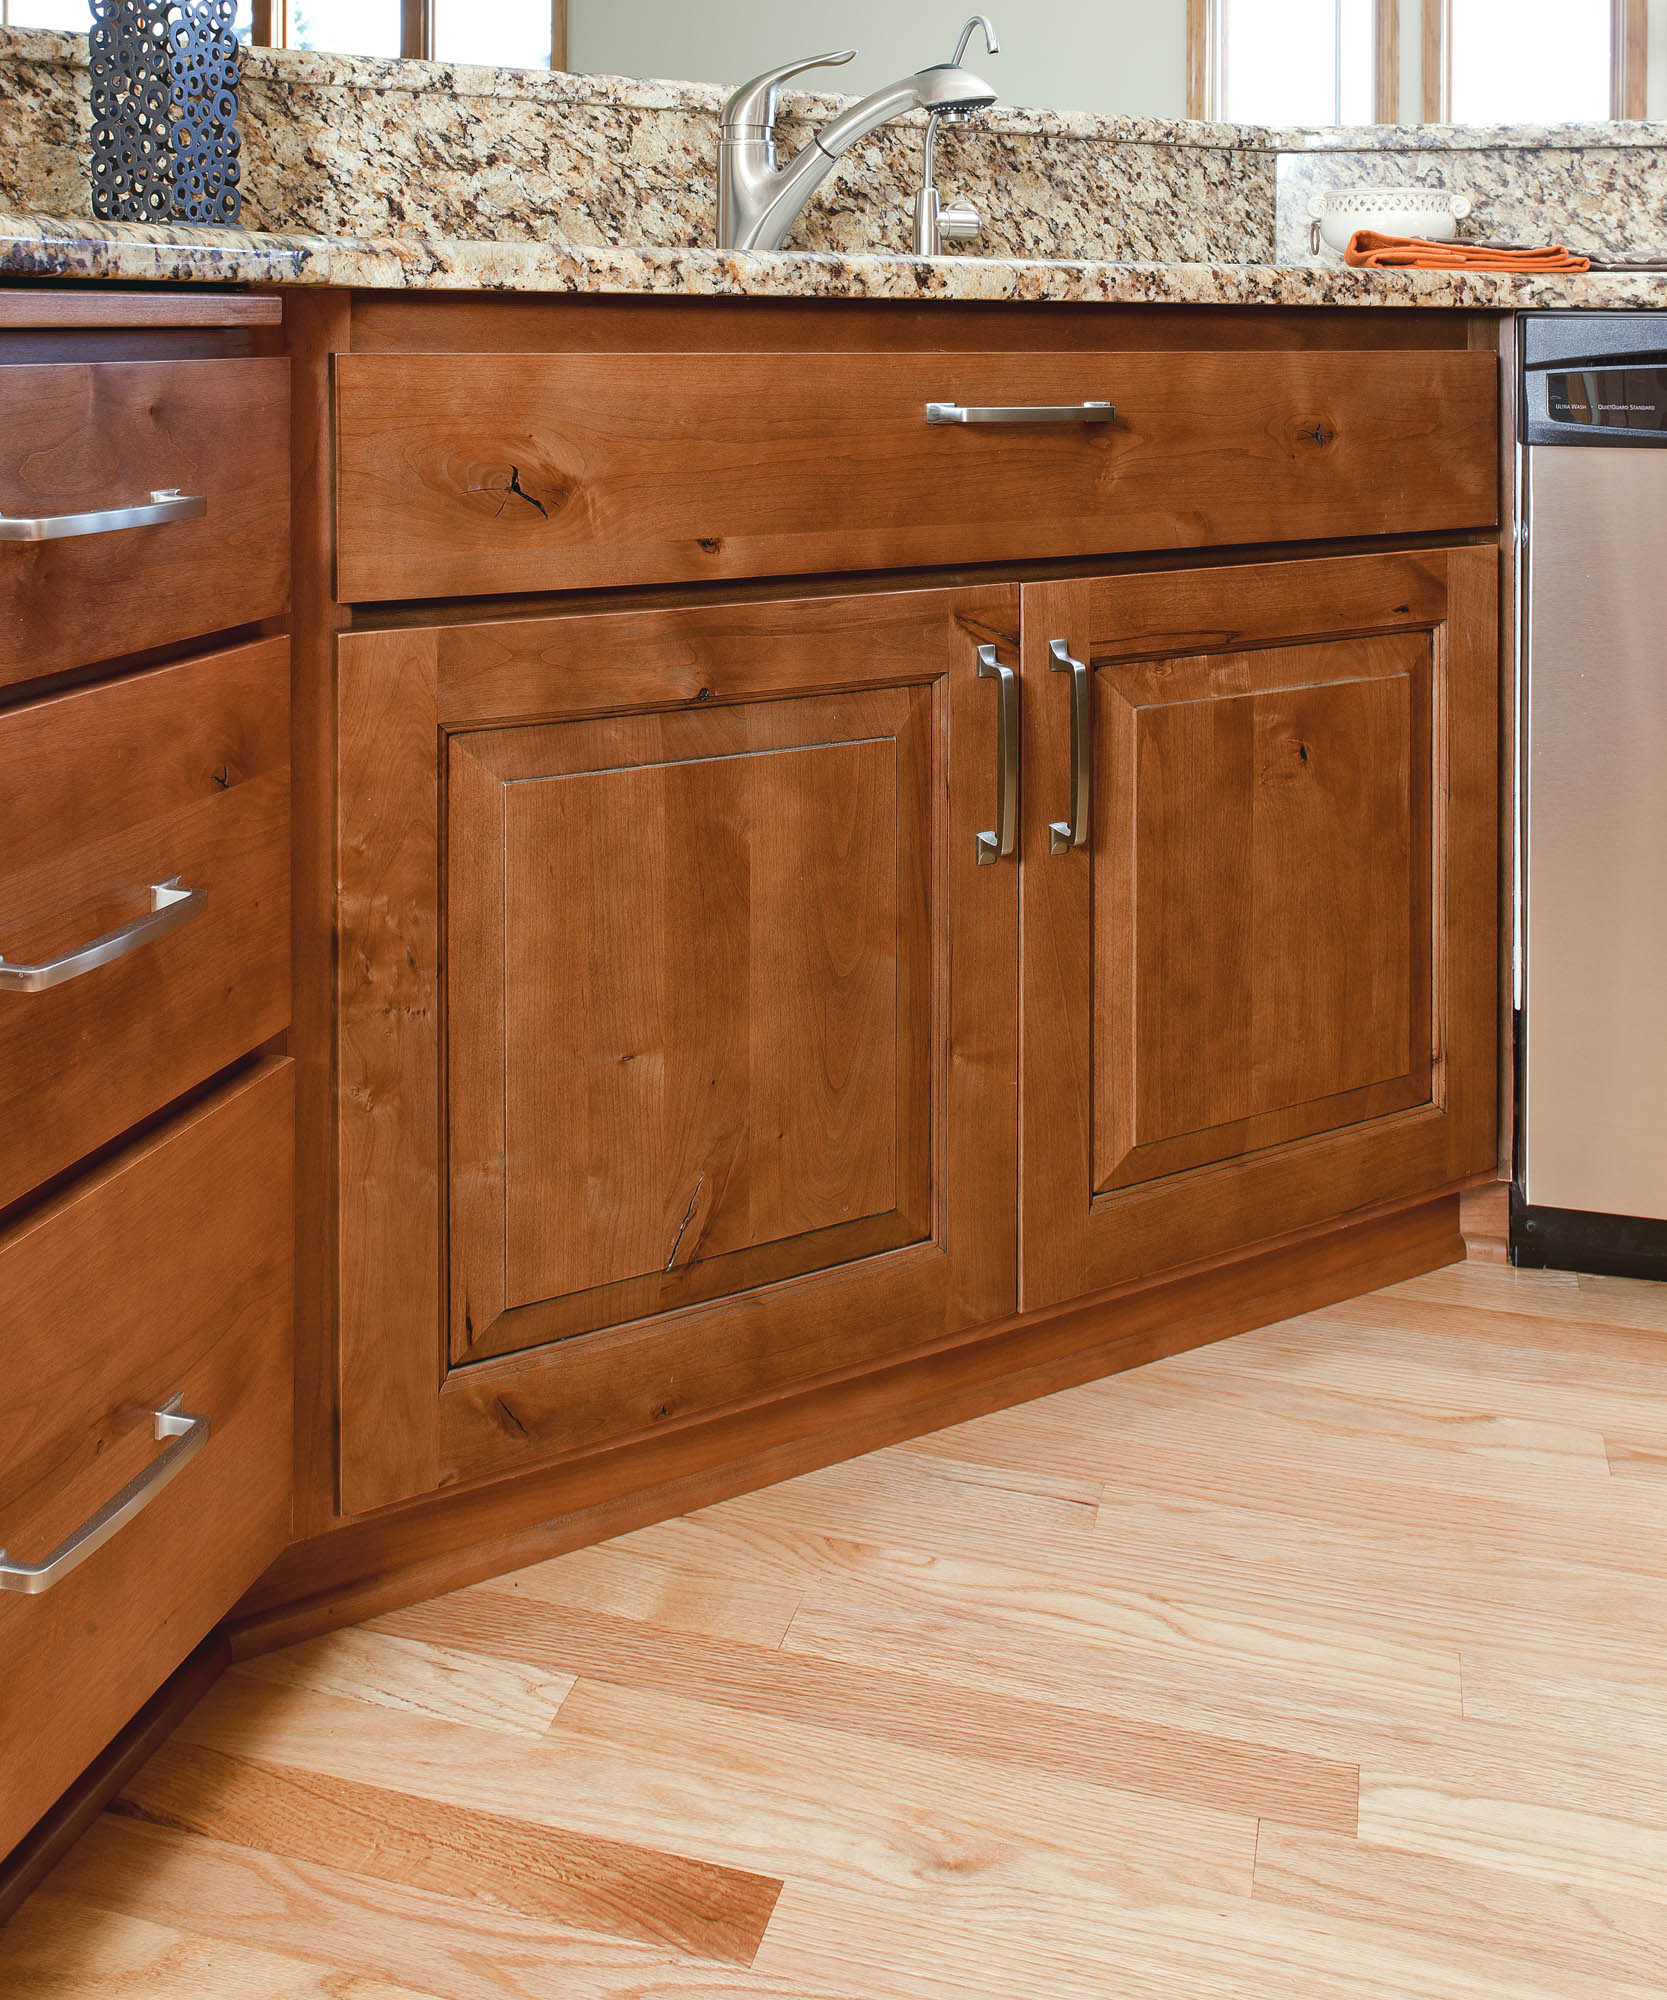 Renew Kitchen Cabinets: See This Comfortable Refaced Kitchen